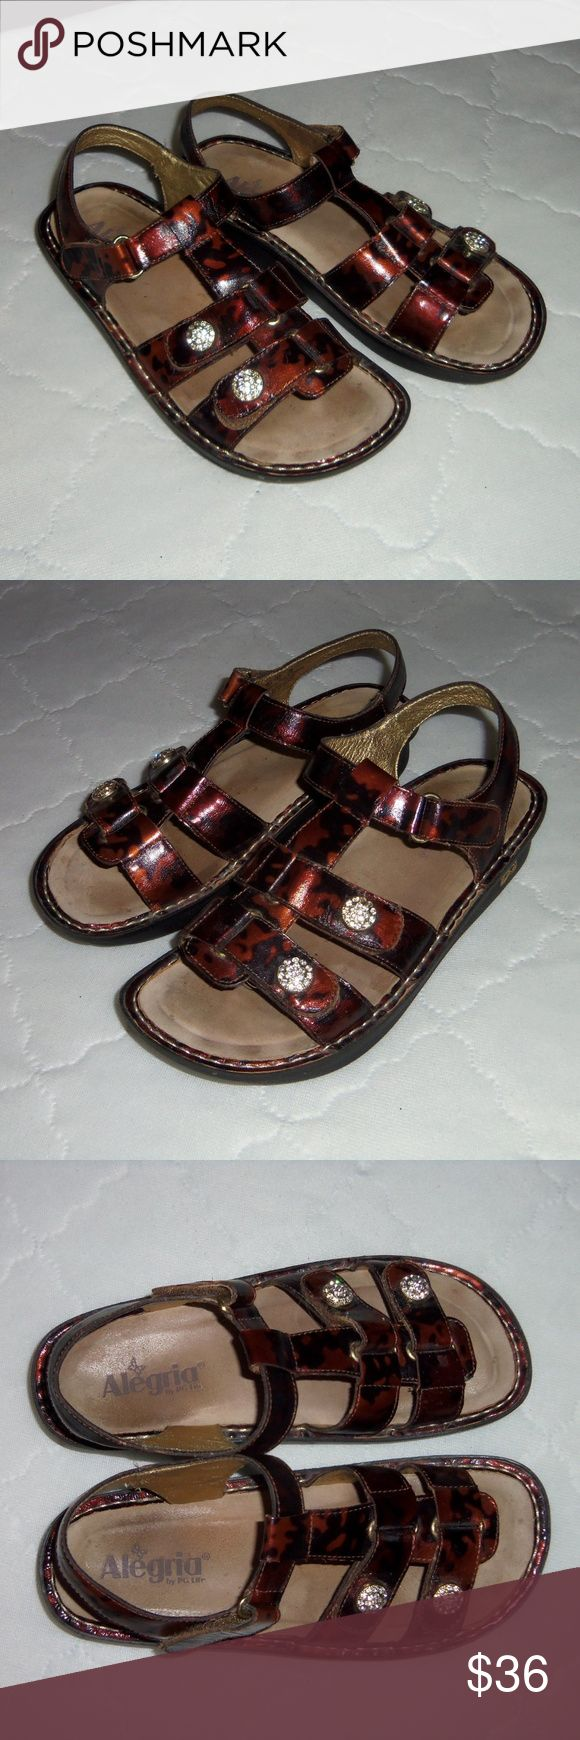 Alegria sandals brown black bling 39 Nice pair of Alegrias! EUR 39 approx. equivalent to US 8.5 to 9.  Genuine leather upper, velcro adjustable with crystal bling on corners of front straps. Minor wear, some wear on heels see all pictures!! Alegria Shoes Sandals